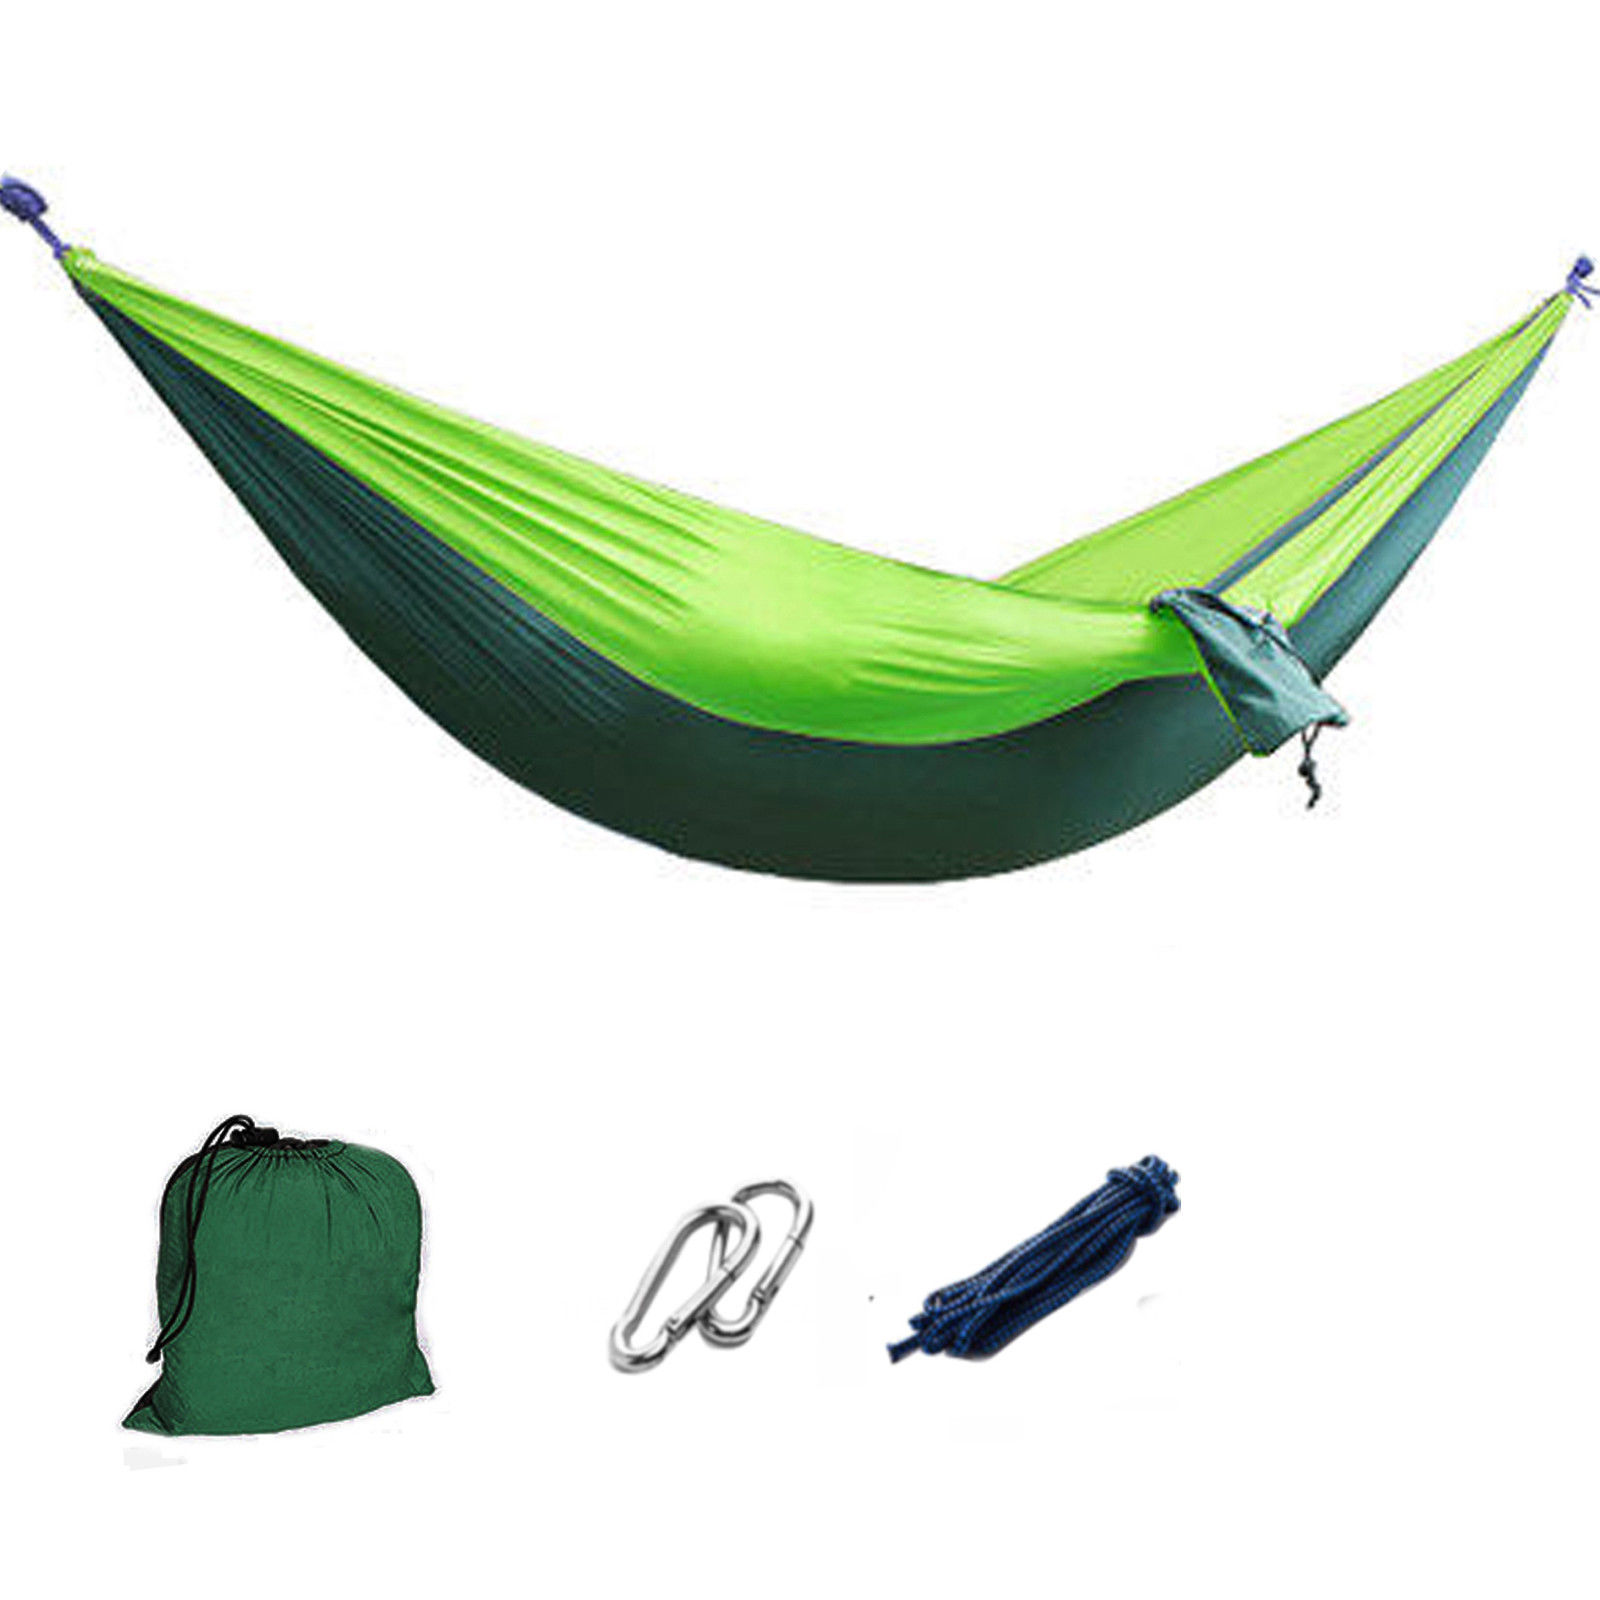 wise colors two backpacking do hammocks fuchsia outfitters blue sky included products doubleowl ropes camping person carabiners owl hammock